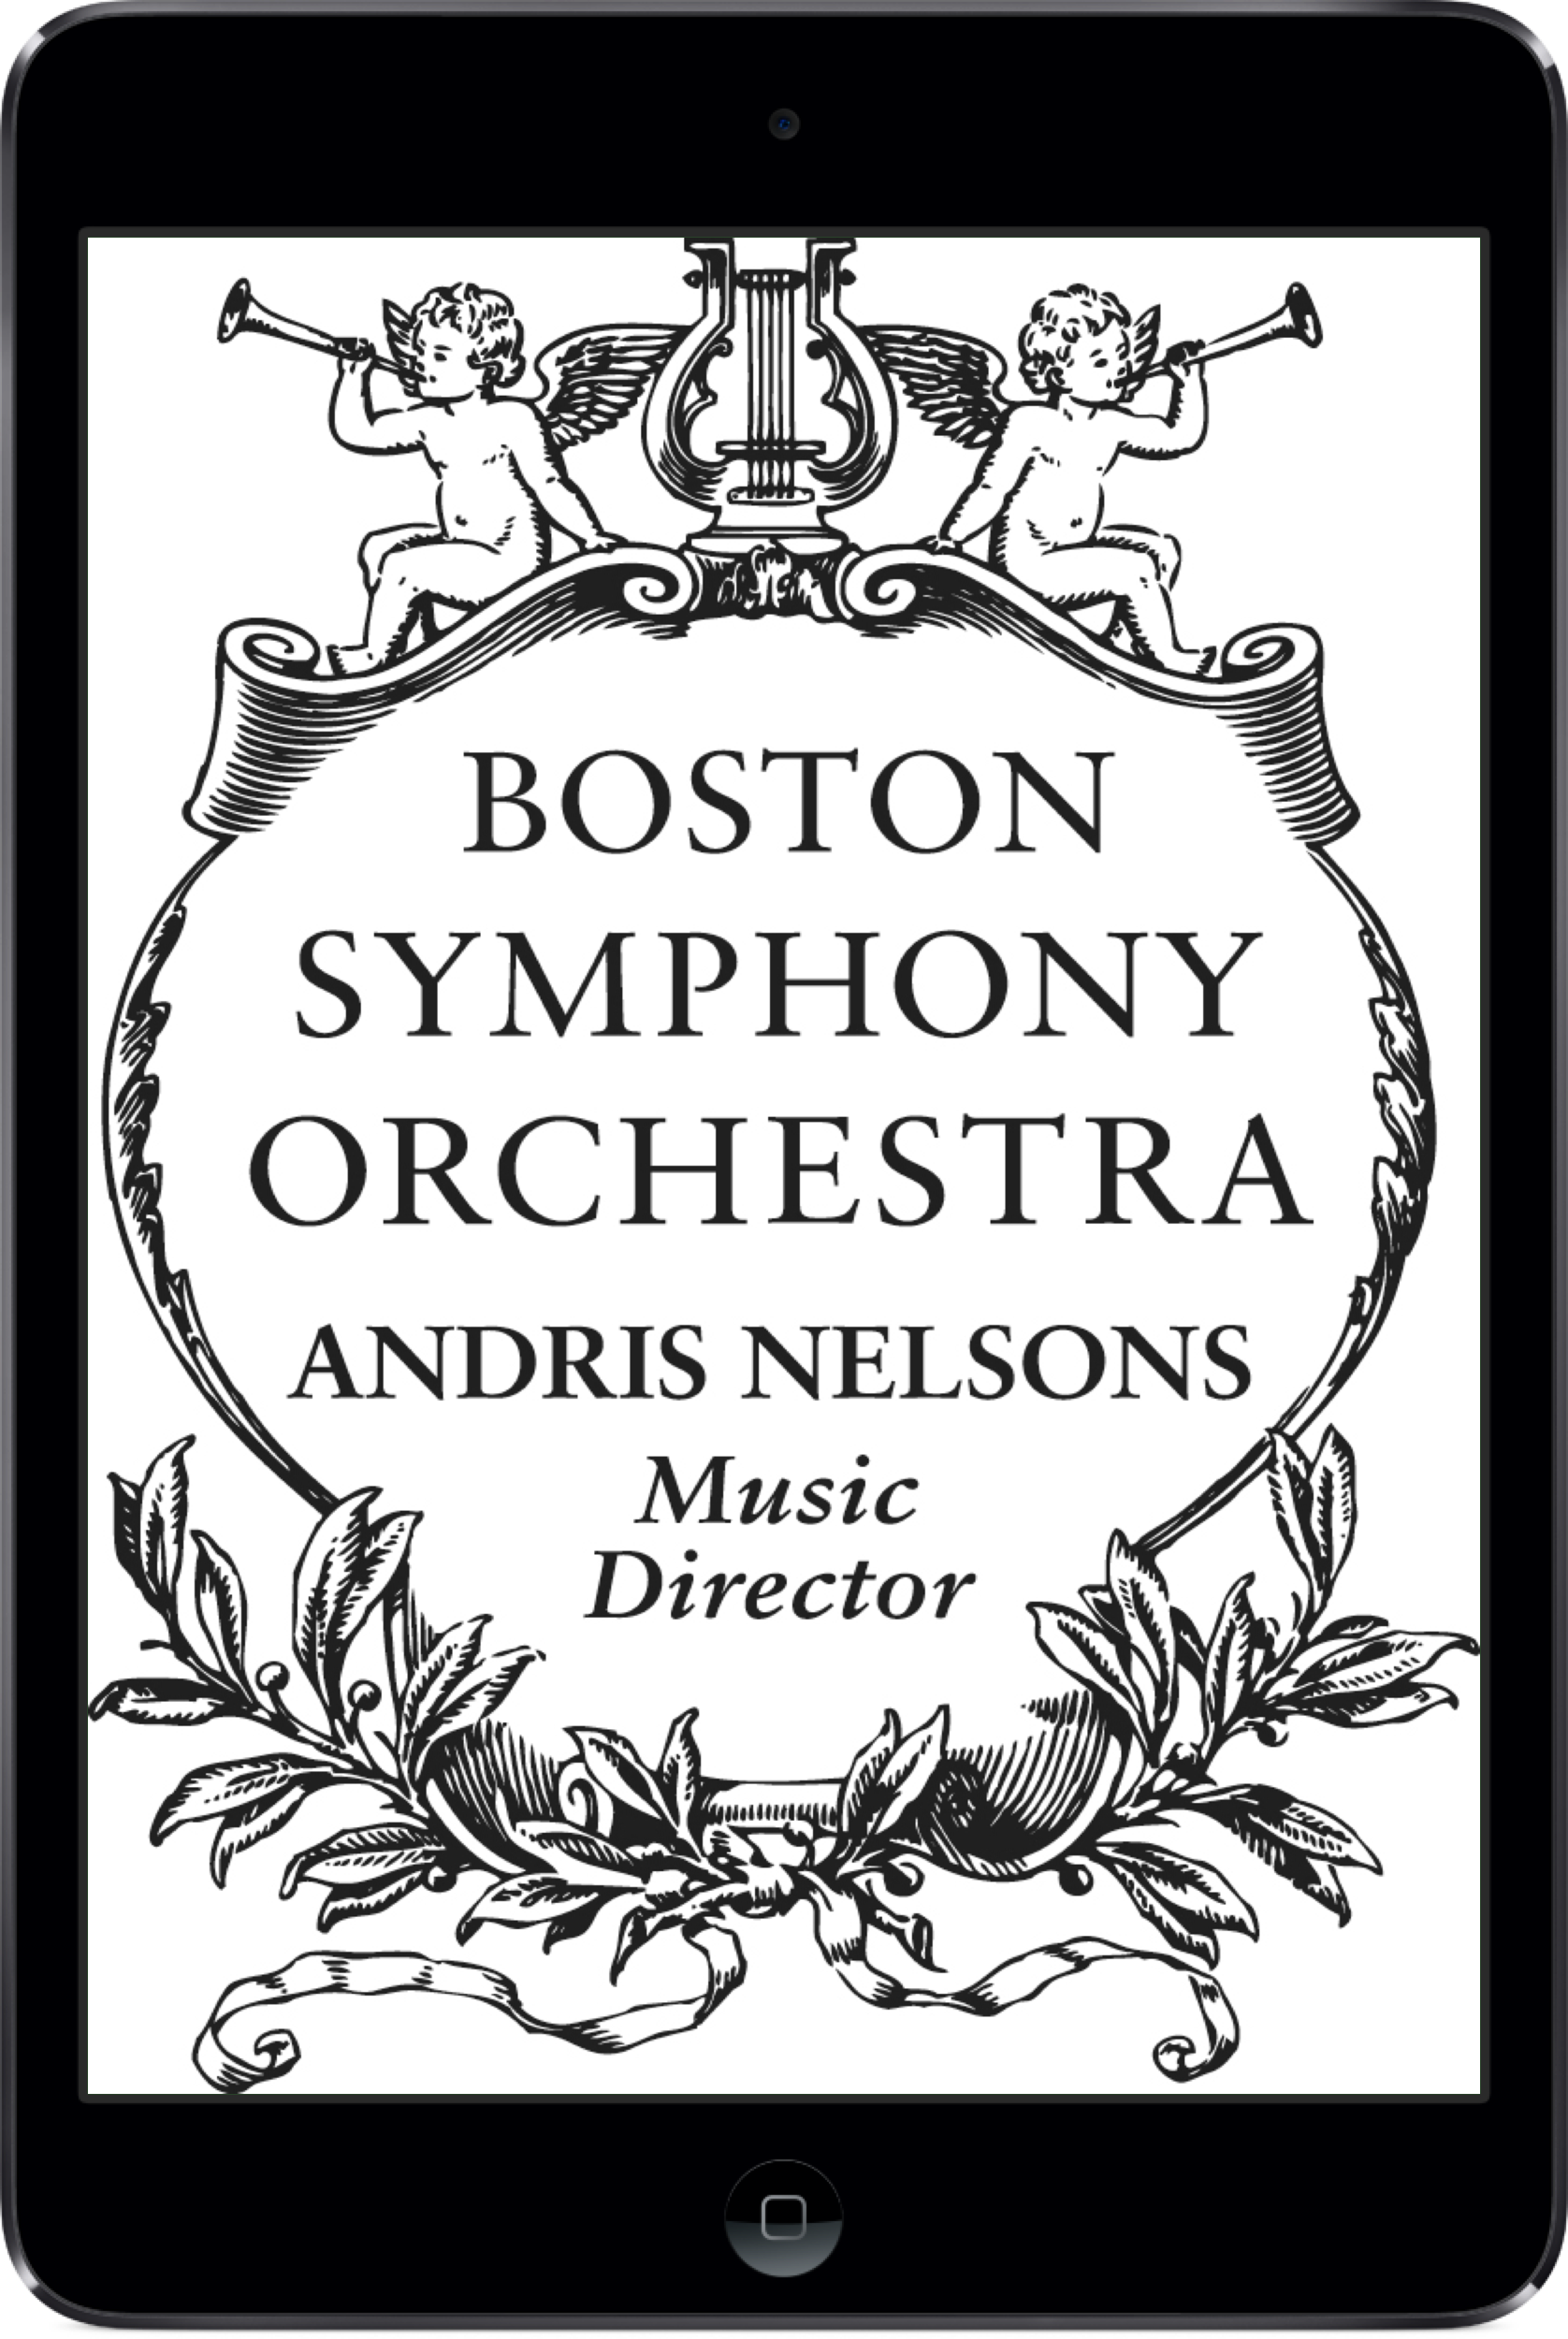 Boston Symphony Orchestra goes modern with customized iPads